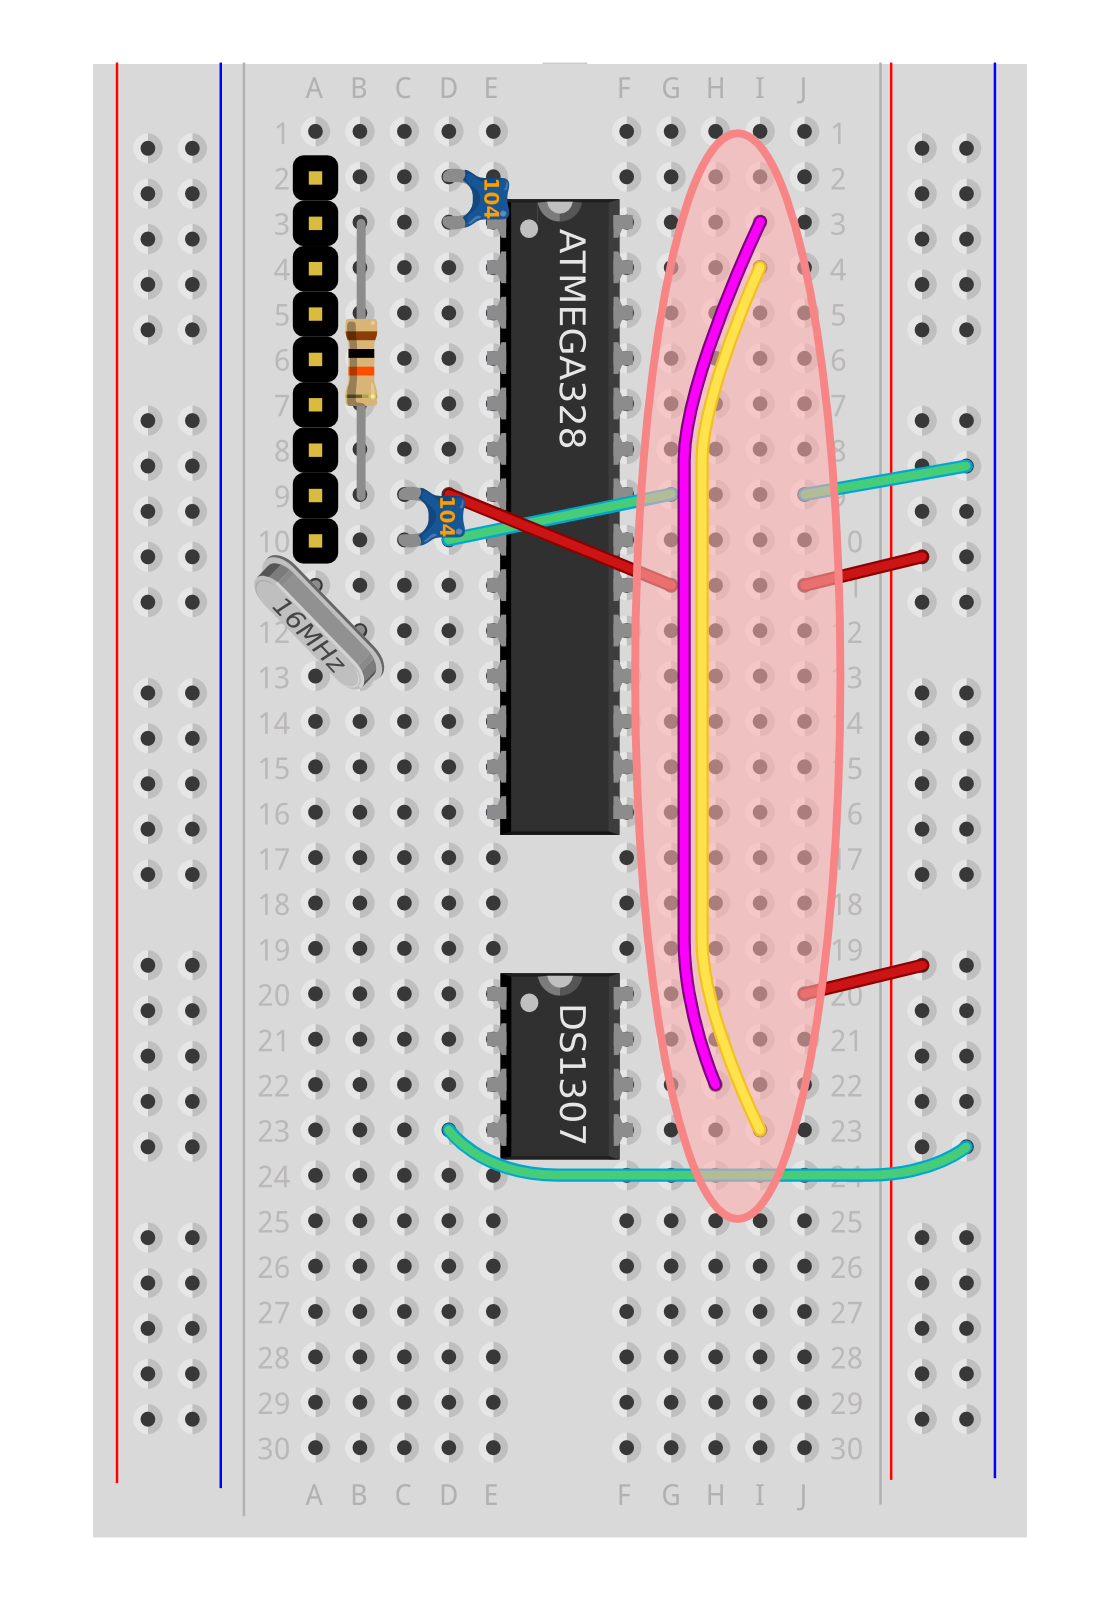 Wiring The Alarm Clock Circuit I2c Communication Chipkit Tutorial 6 Inter Integrated Shrimps Microcontroller And Rtc Chip Communicate Using A Protocol Known As Or This Is Also Two Wire